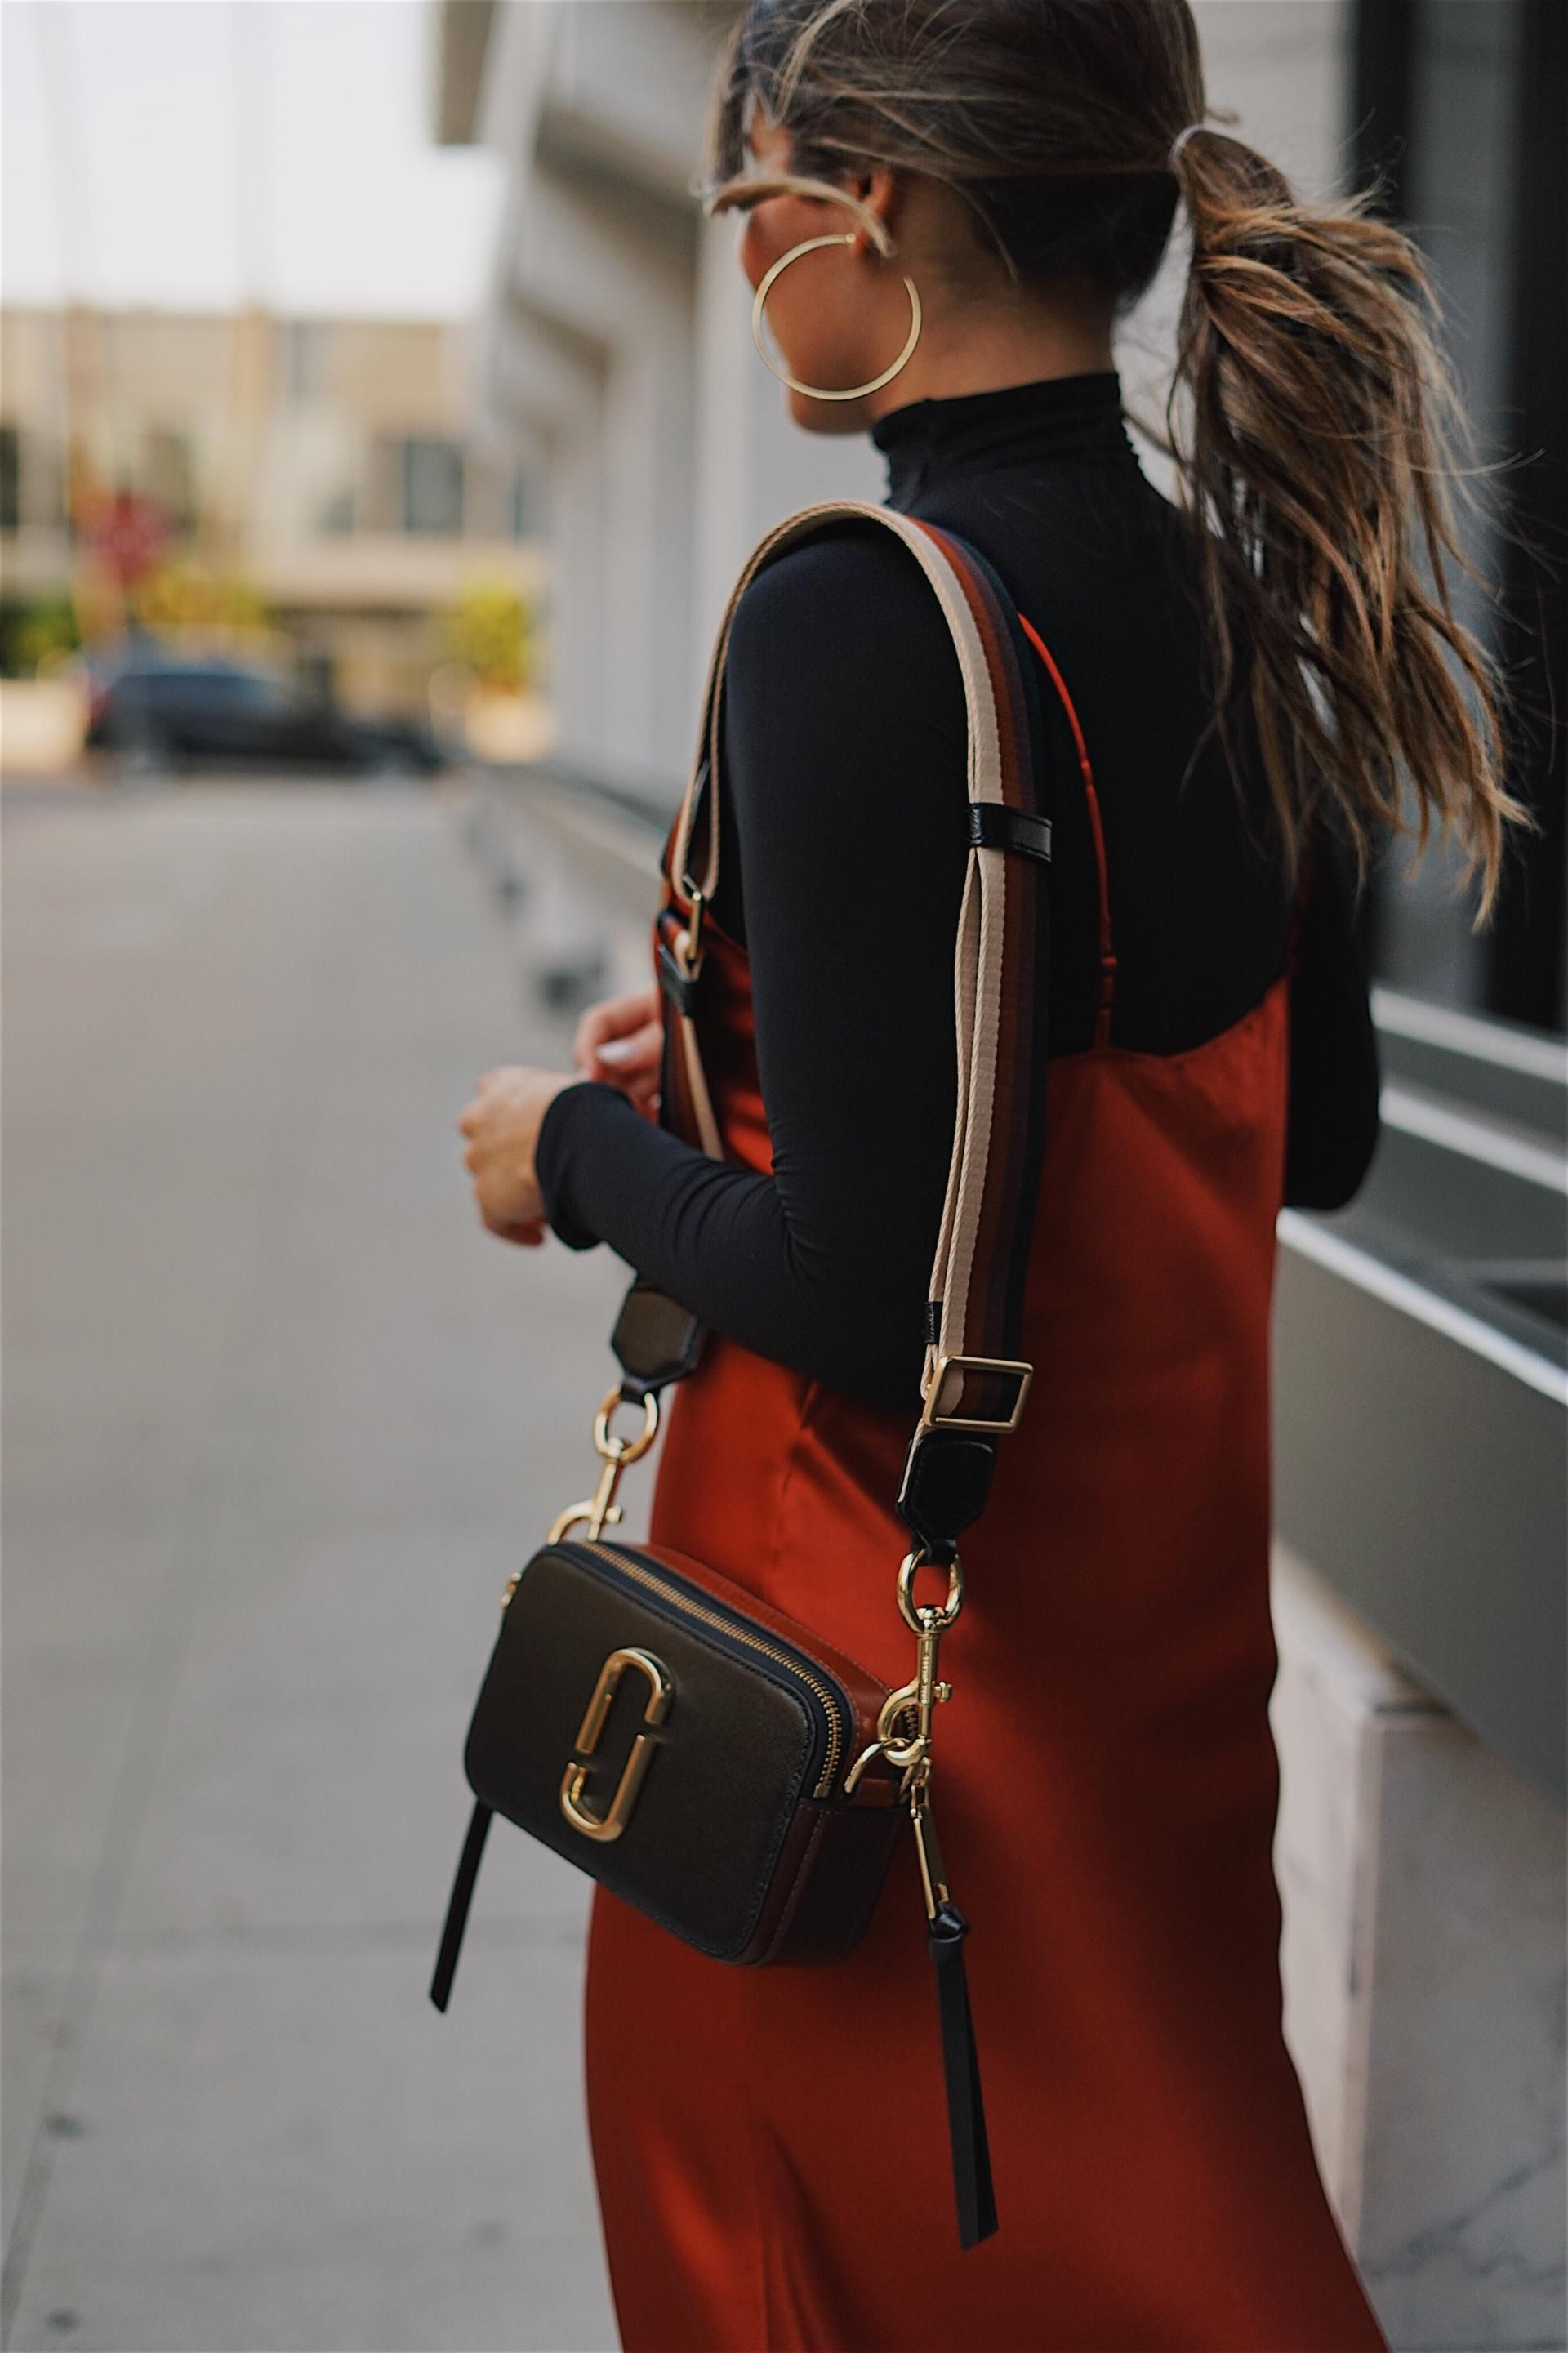 0f13247bfb368 Pam Hetlinger wearing a marc jacobs camera bag and a red silk dress